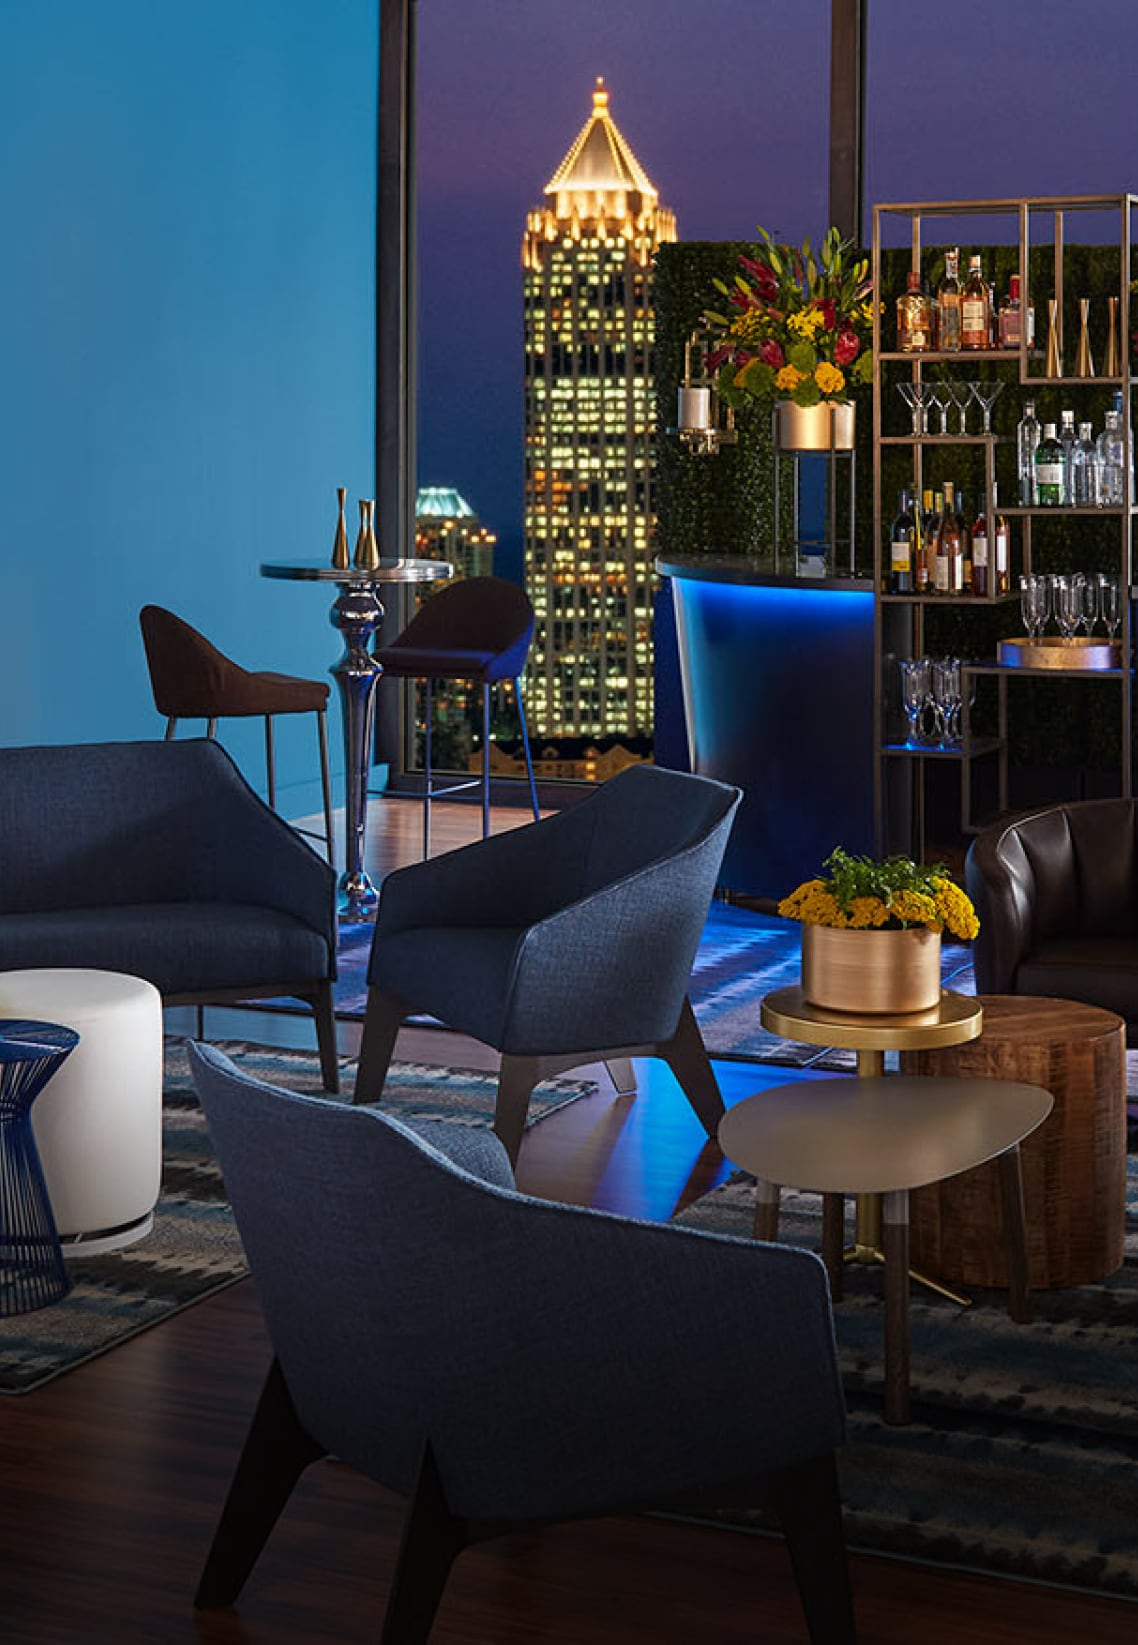 Night event with blue furniture and bar